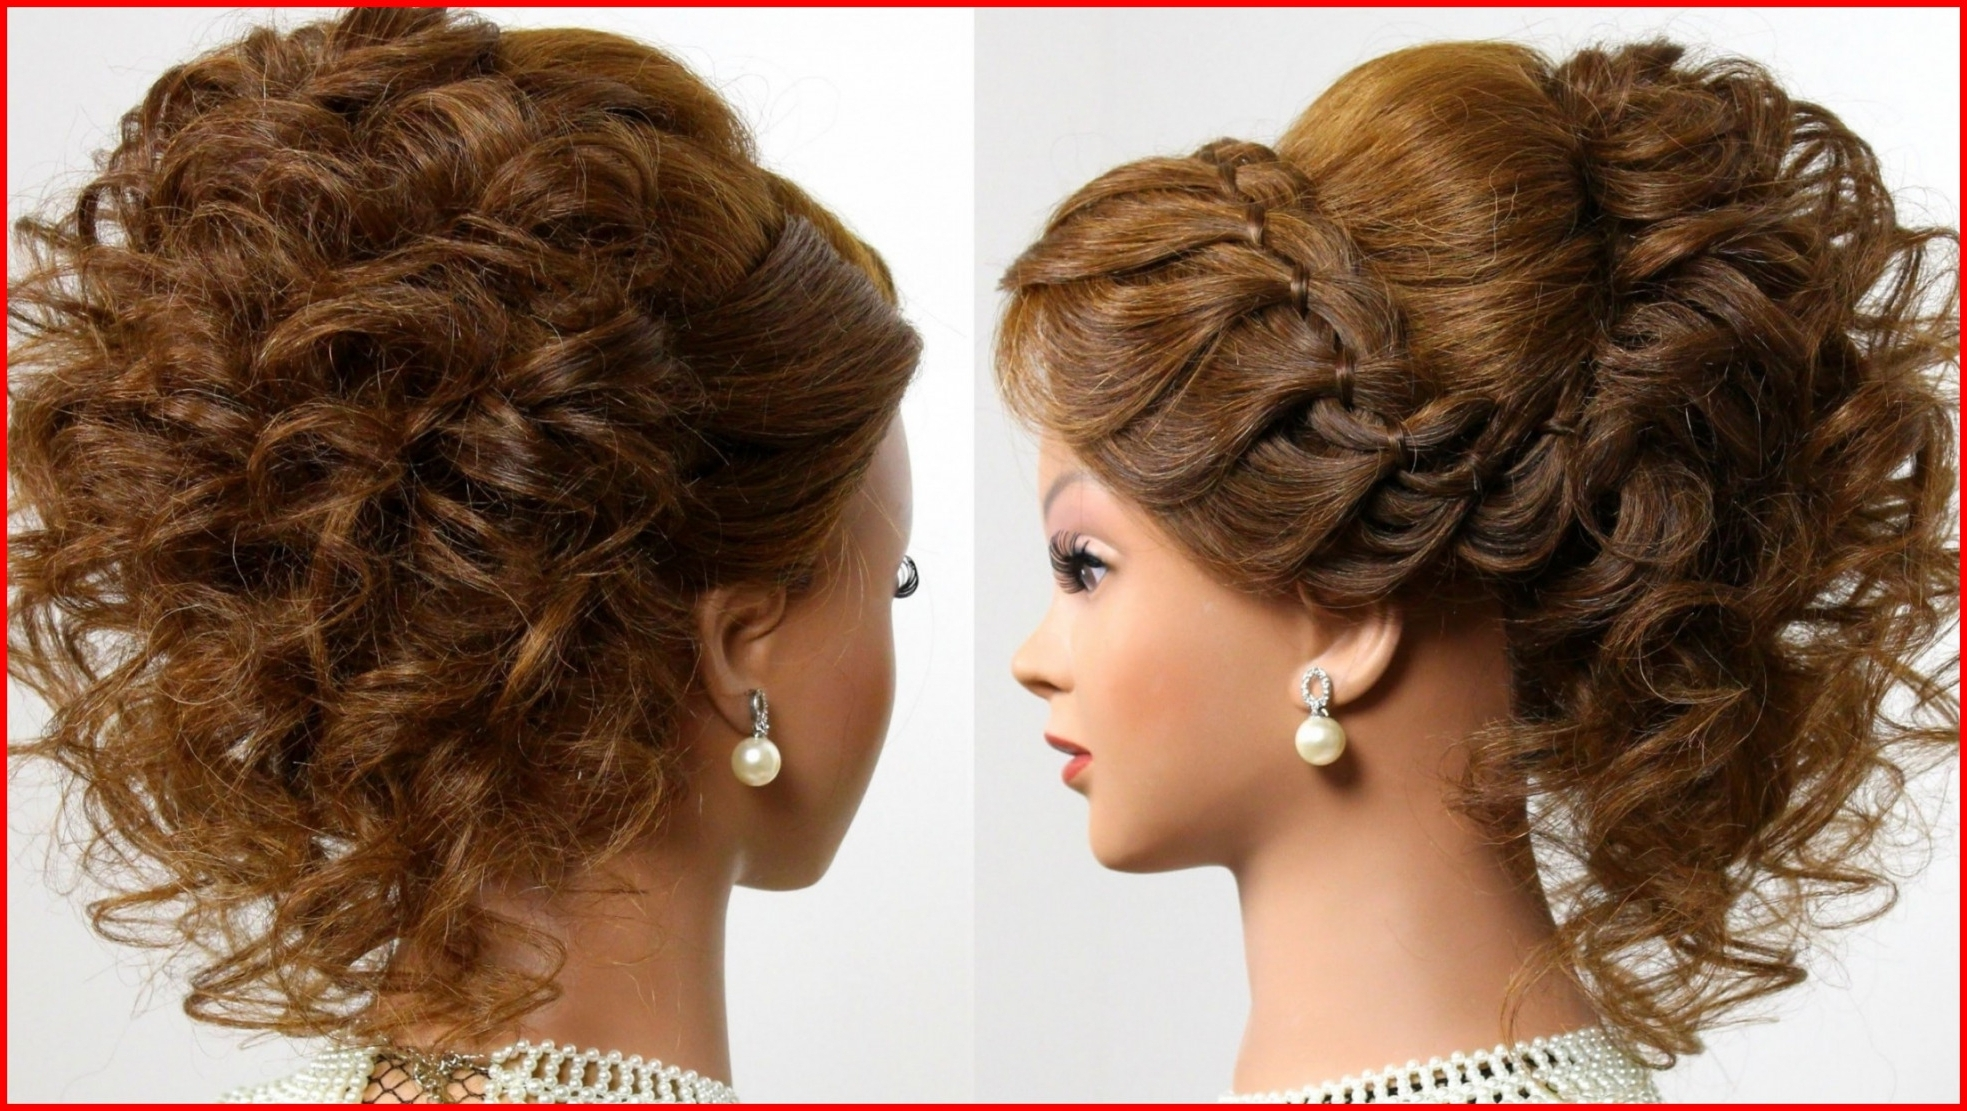 Updo Hairstyles For Long Curly Hair 34555 Bridesmaid Hairstyles In Widely Used Wedding Updo Hairstyles For Long Curly Hair (View 13 of 15)